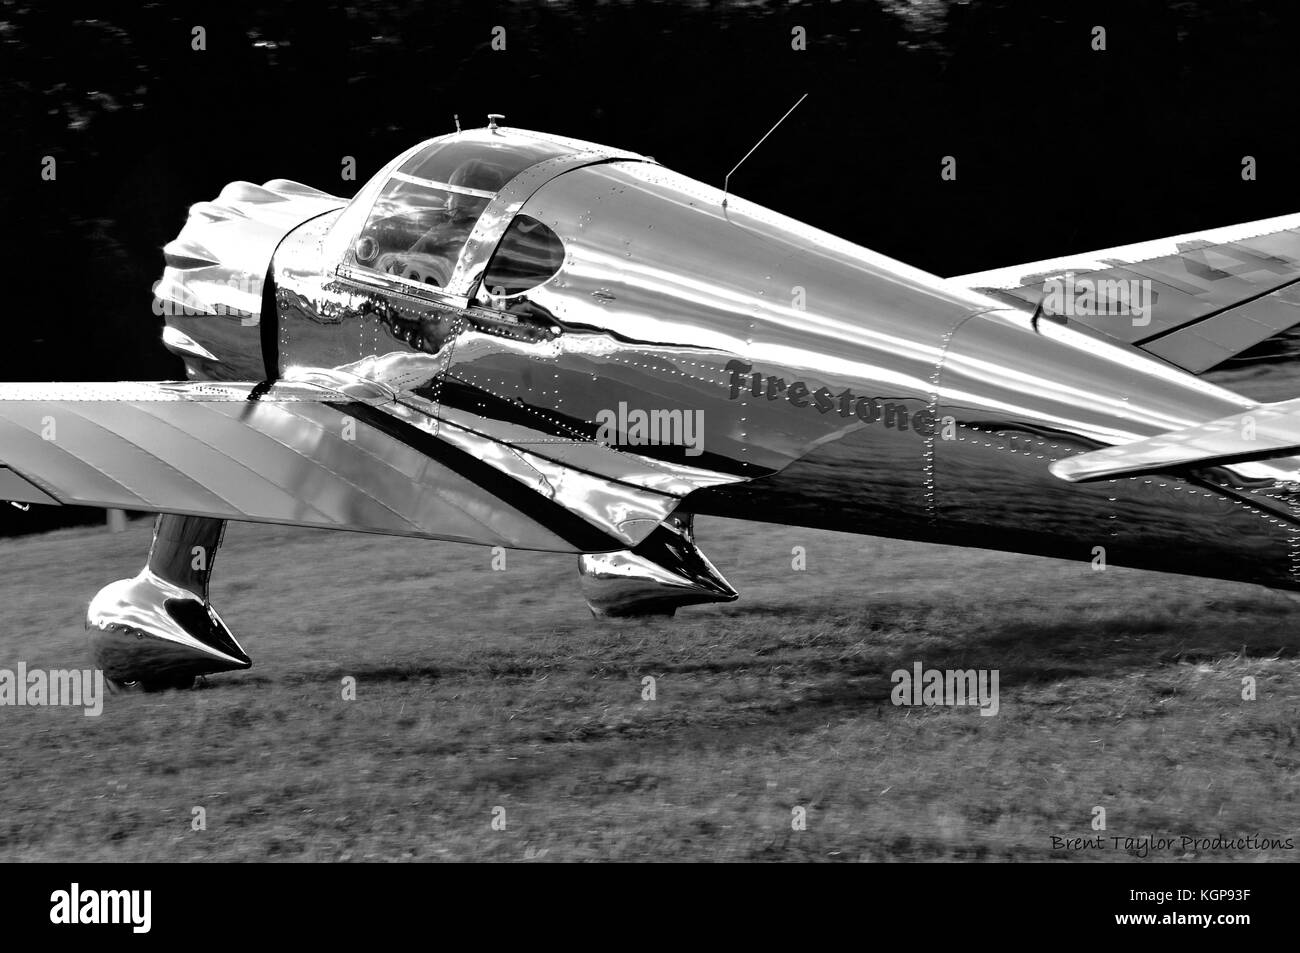 There's something very appealing about polished metal surfaces, especially aircraft. In this case it's a rare - Stock Image